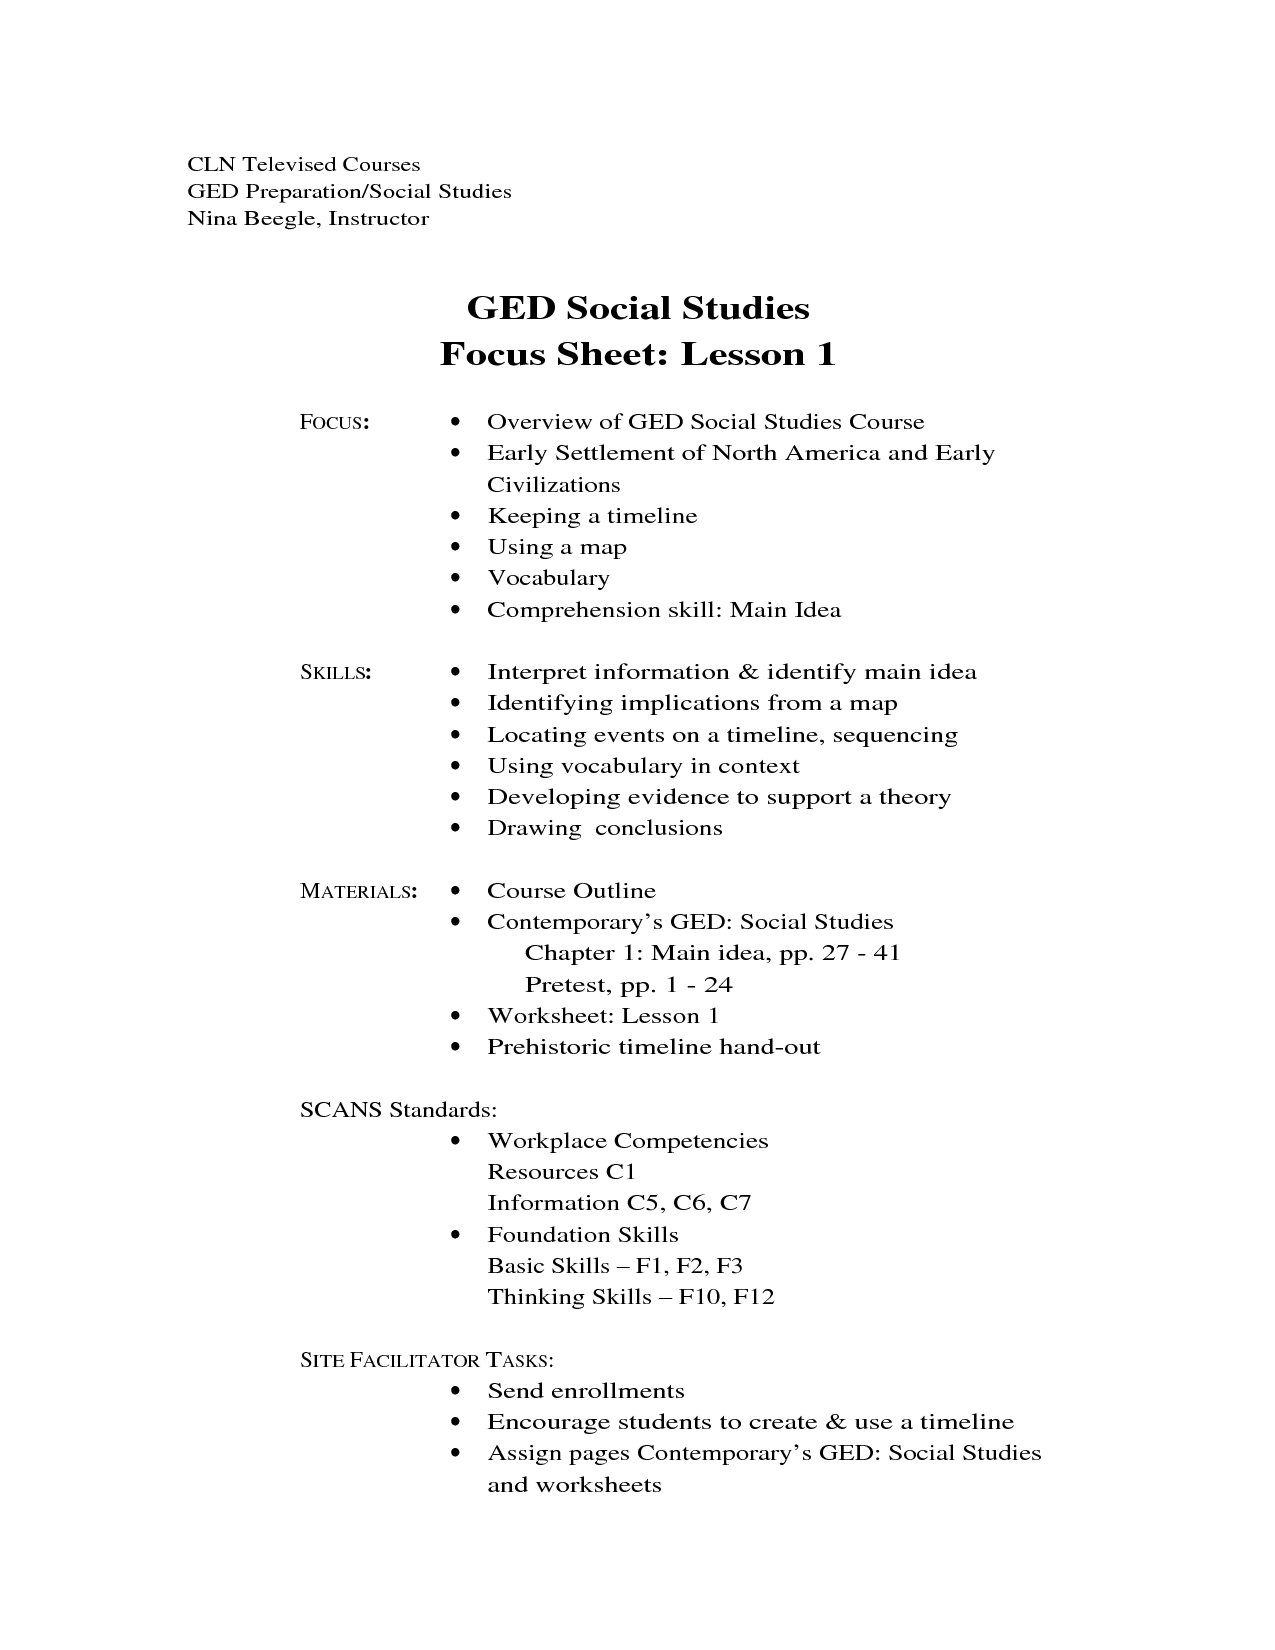 Worksheets Ged Prep Worksheets 6 best images of printable ged workbooks social studies worksheets